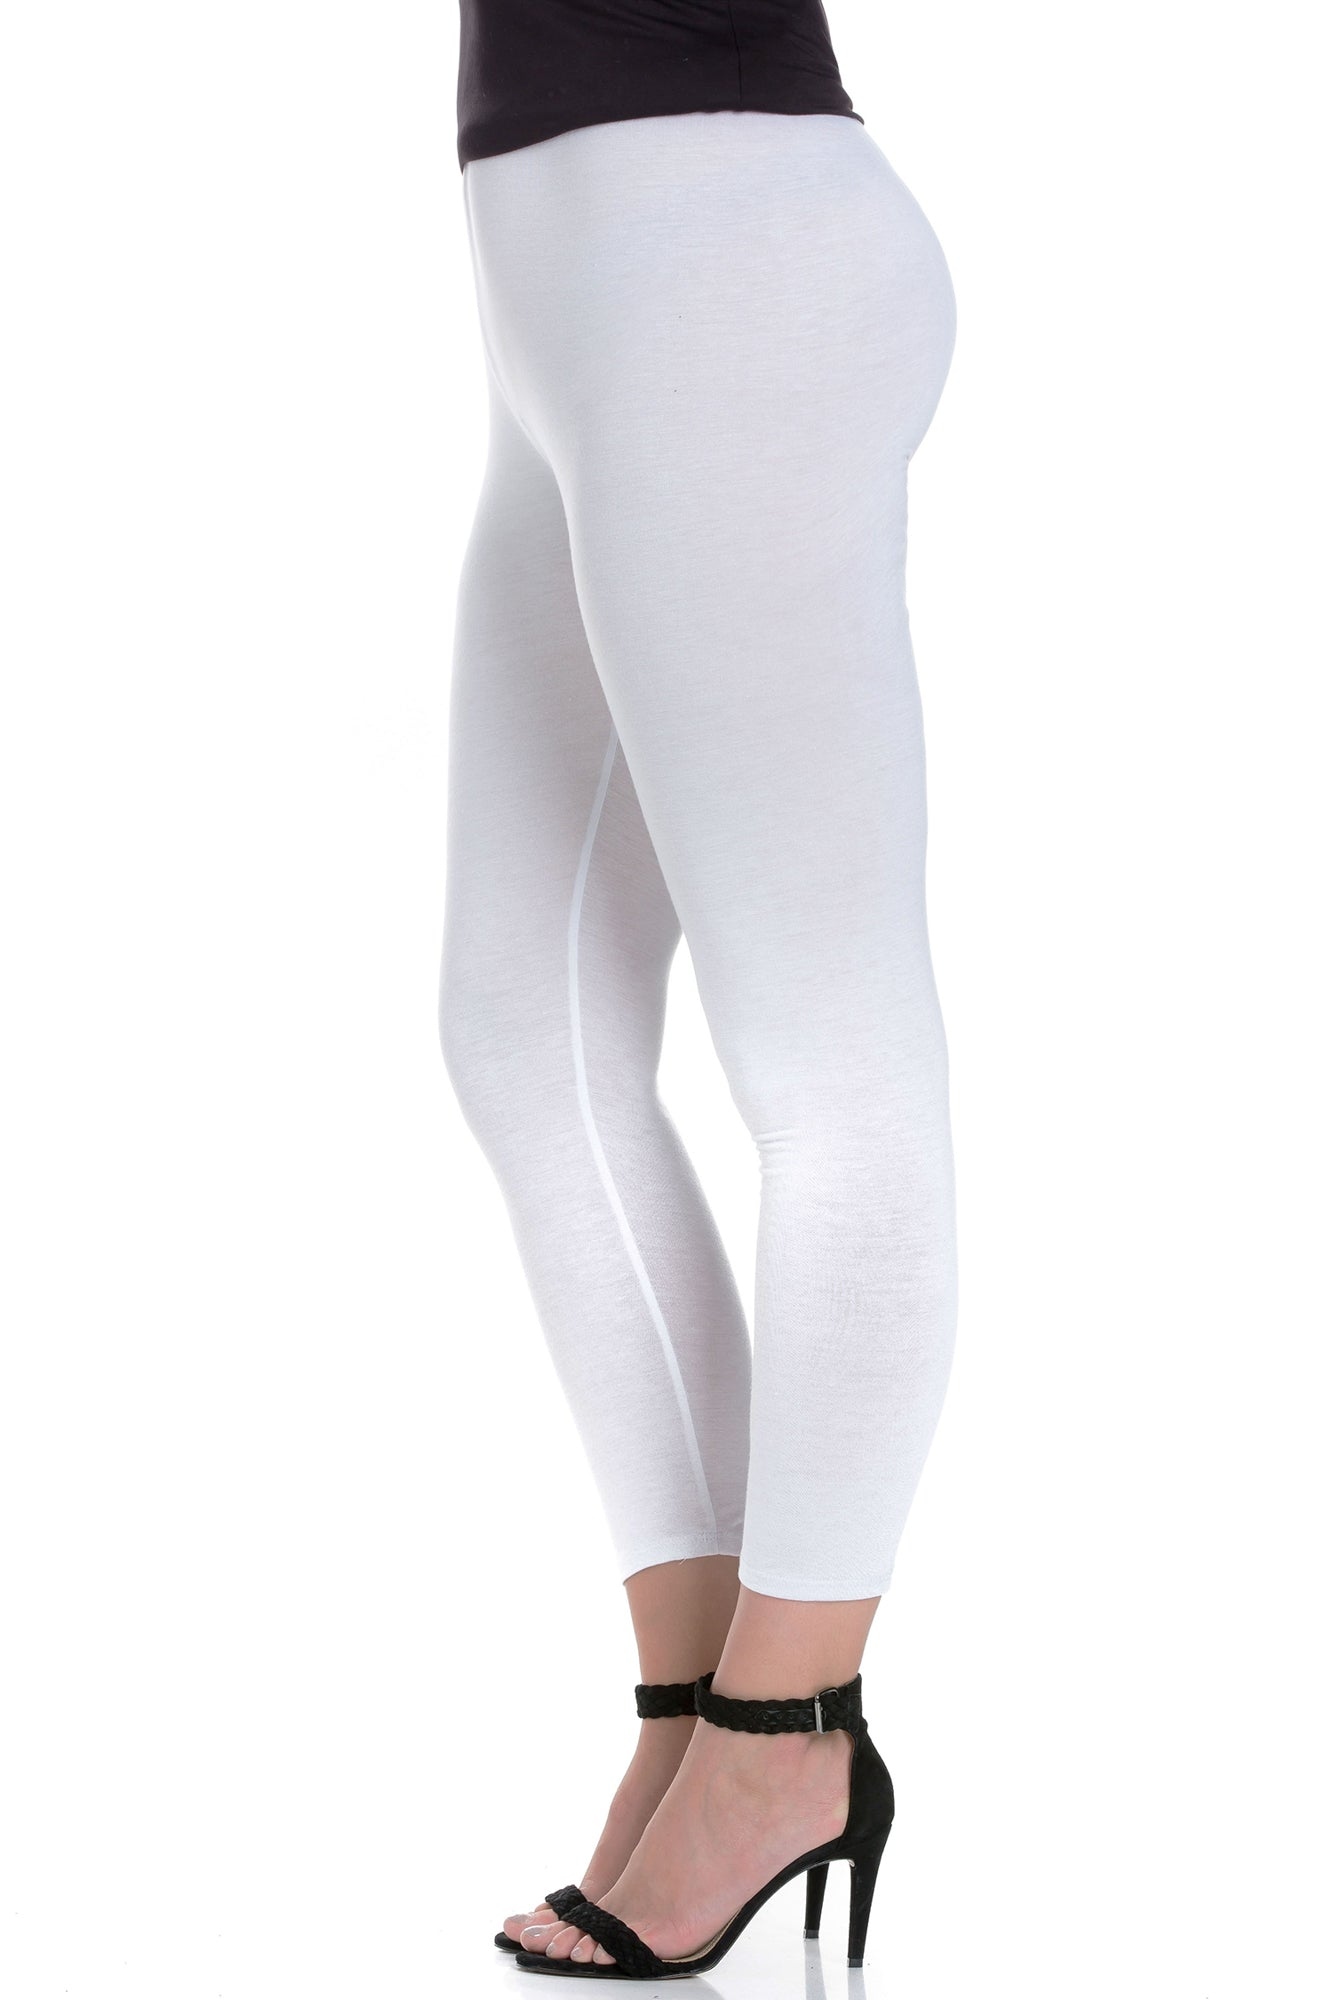 24seven Comfort Apparel Womens Comfortable Ankle Length Leggings-PANTS-24Seven Comfort Apparel-WHITE-S-24/7 Comfort Apparel